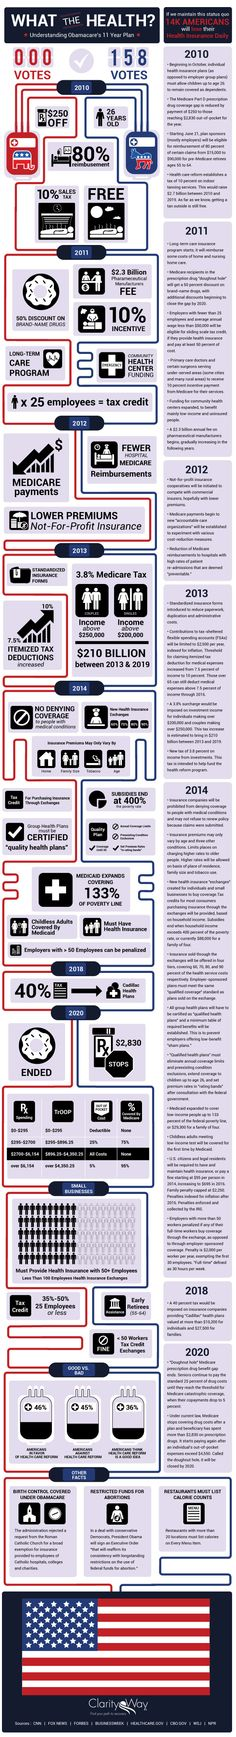 What The Health? Understanding Obamacare's 11 Year Plan[INFOGRAPHIC] #health #Obamacare